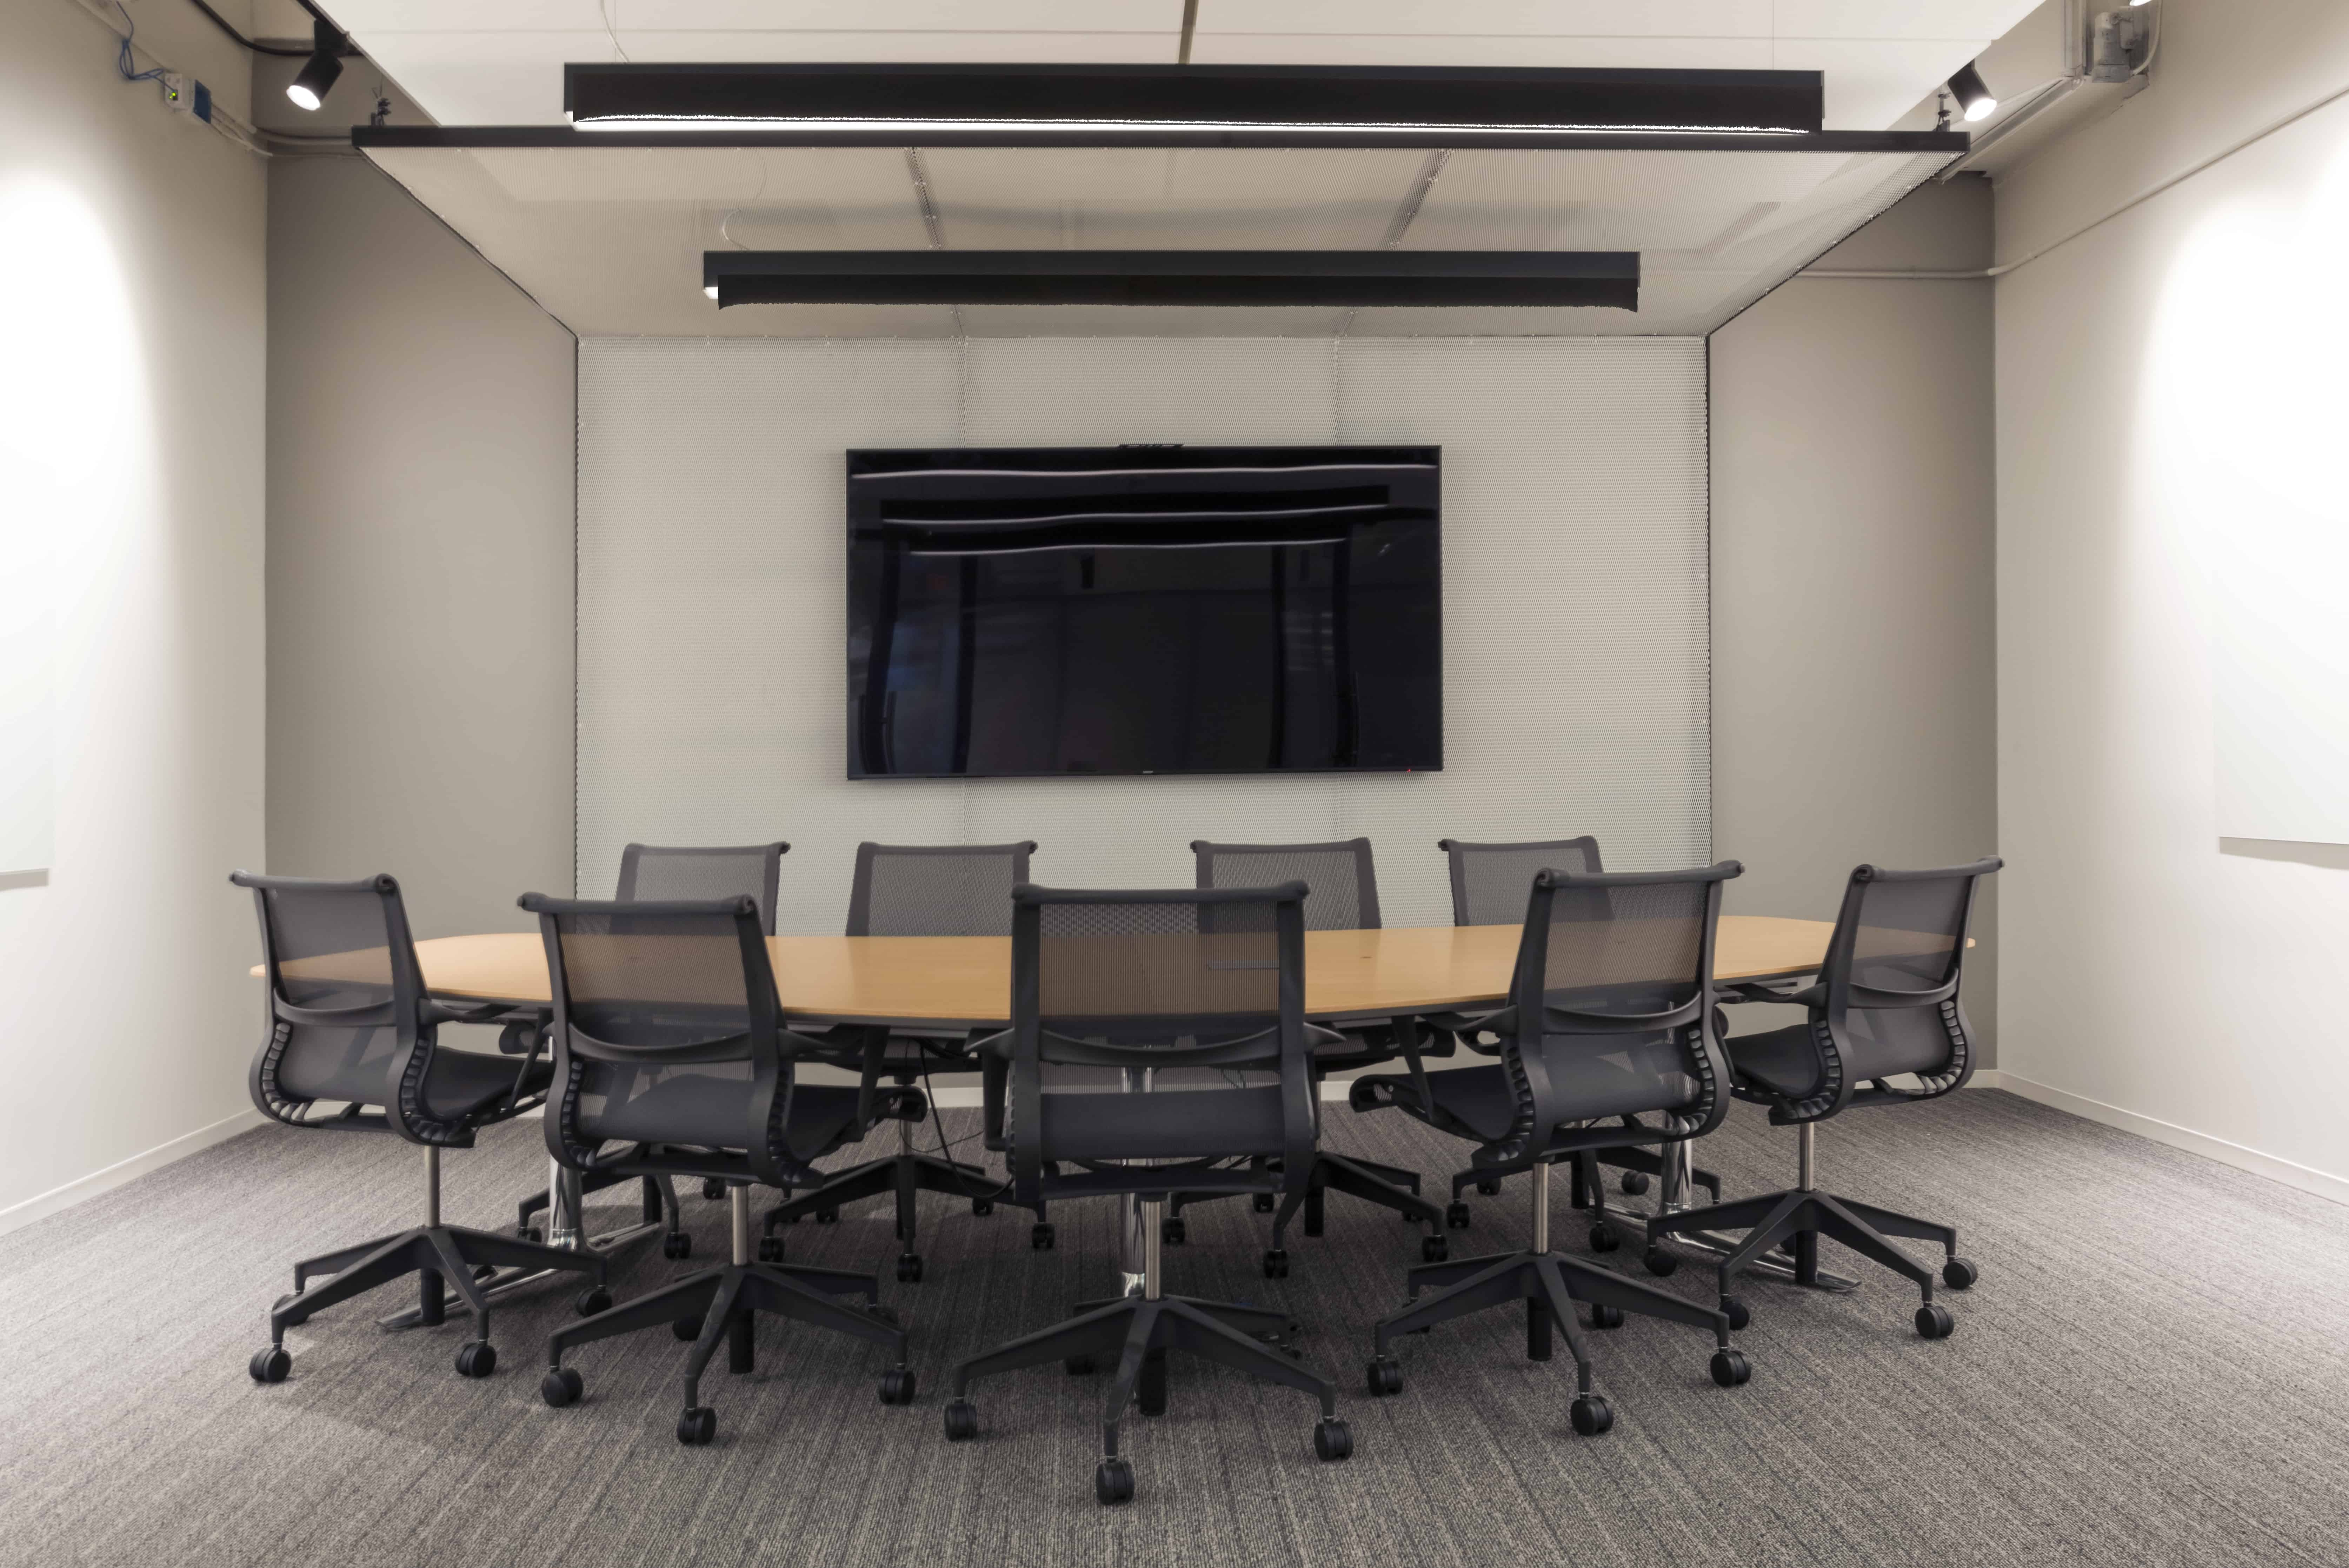 Video Conference Room